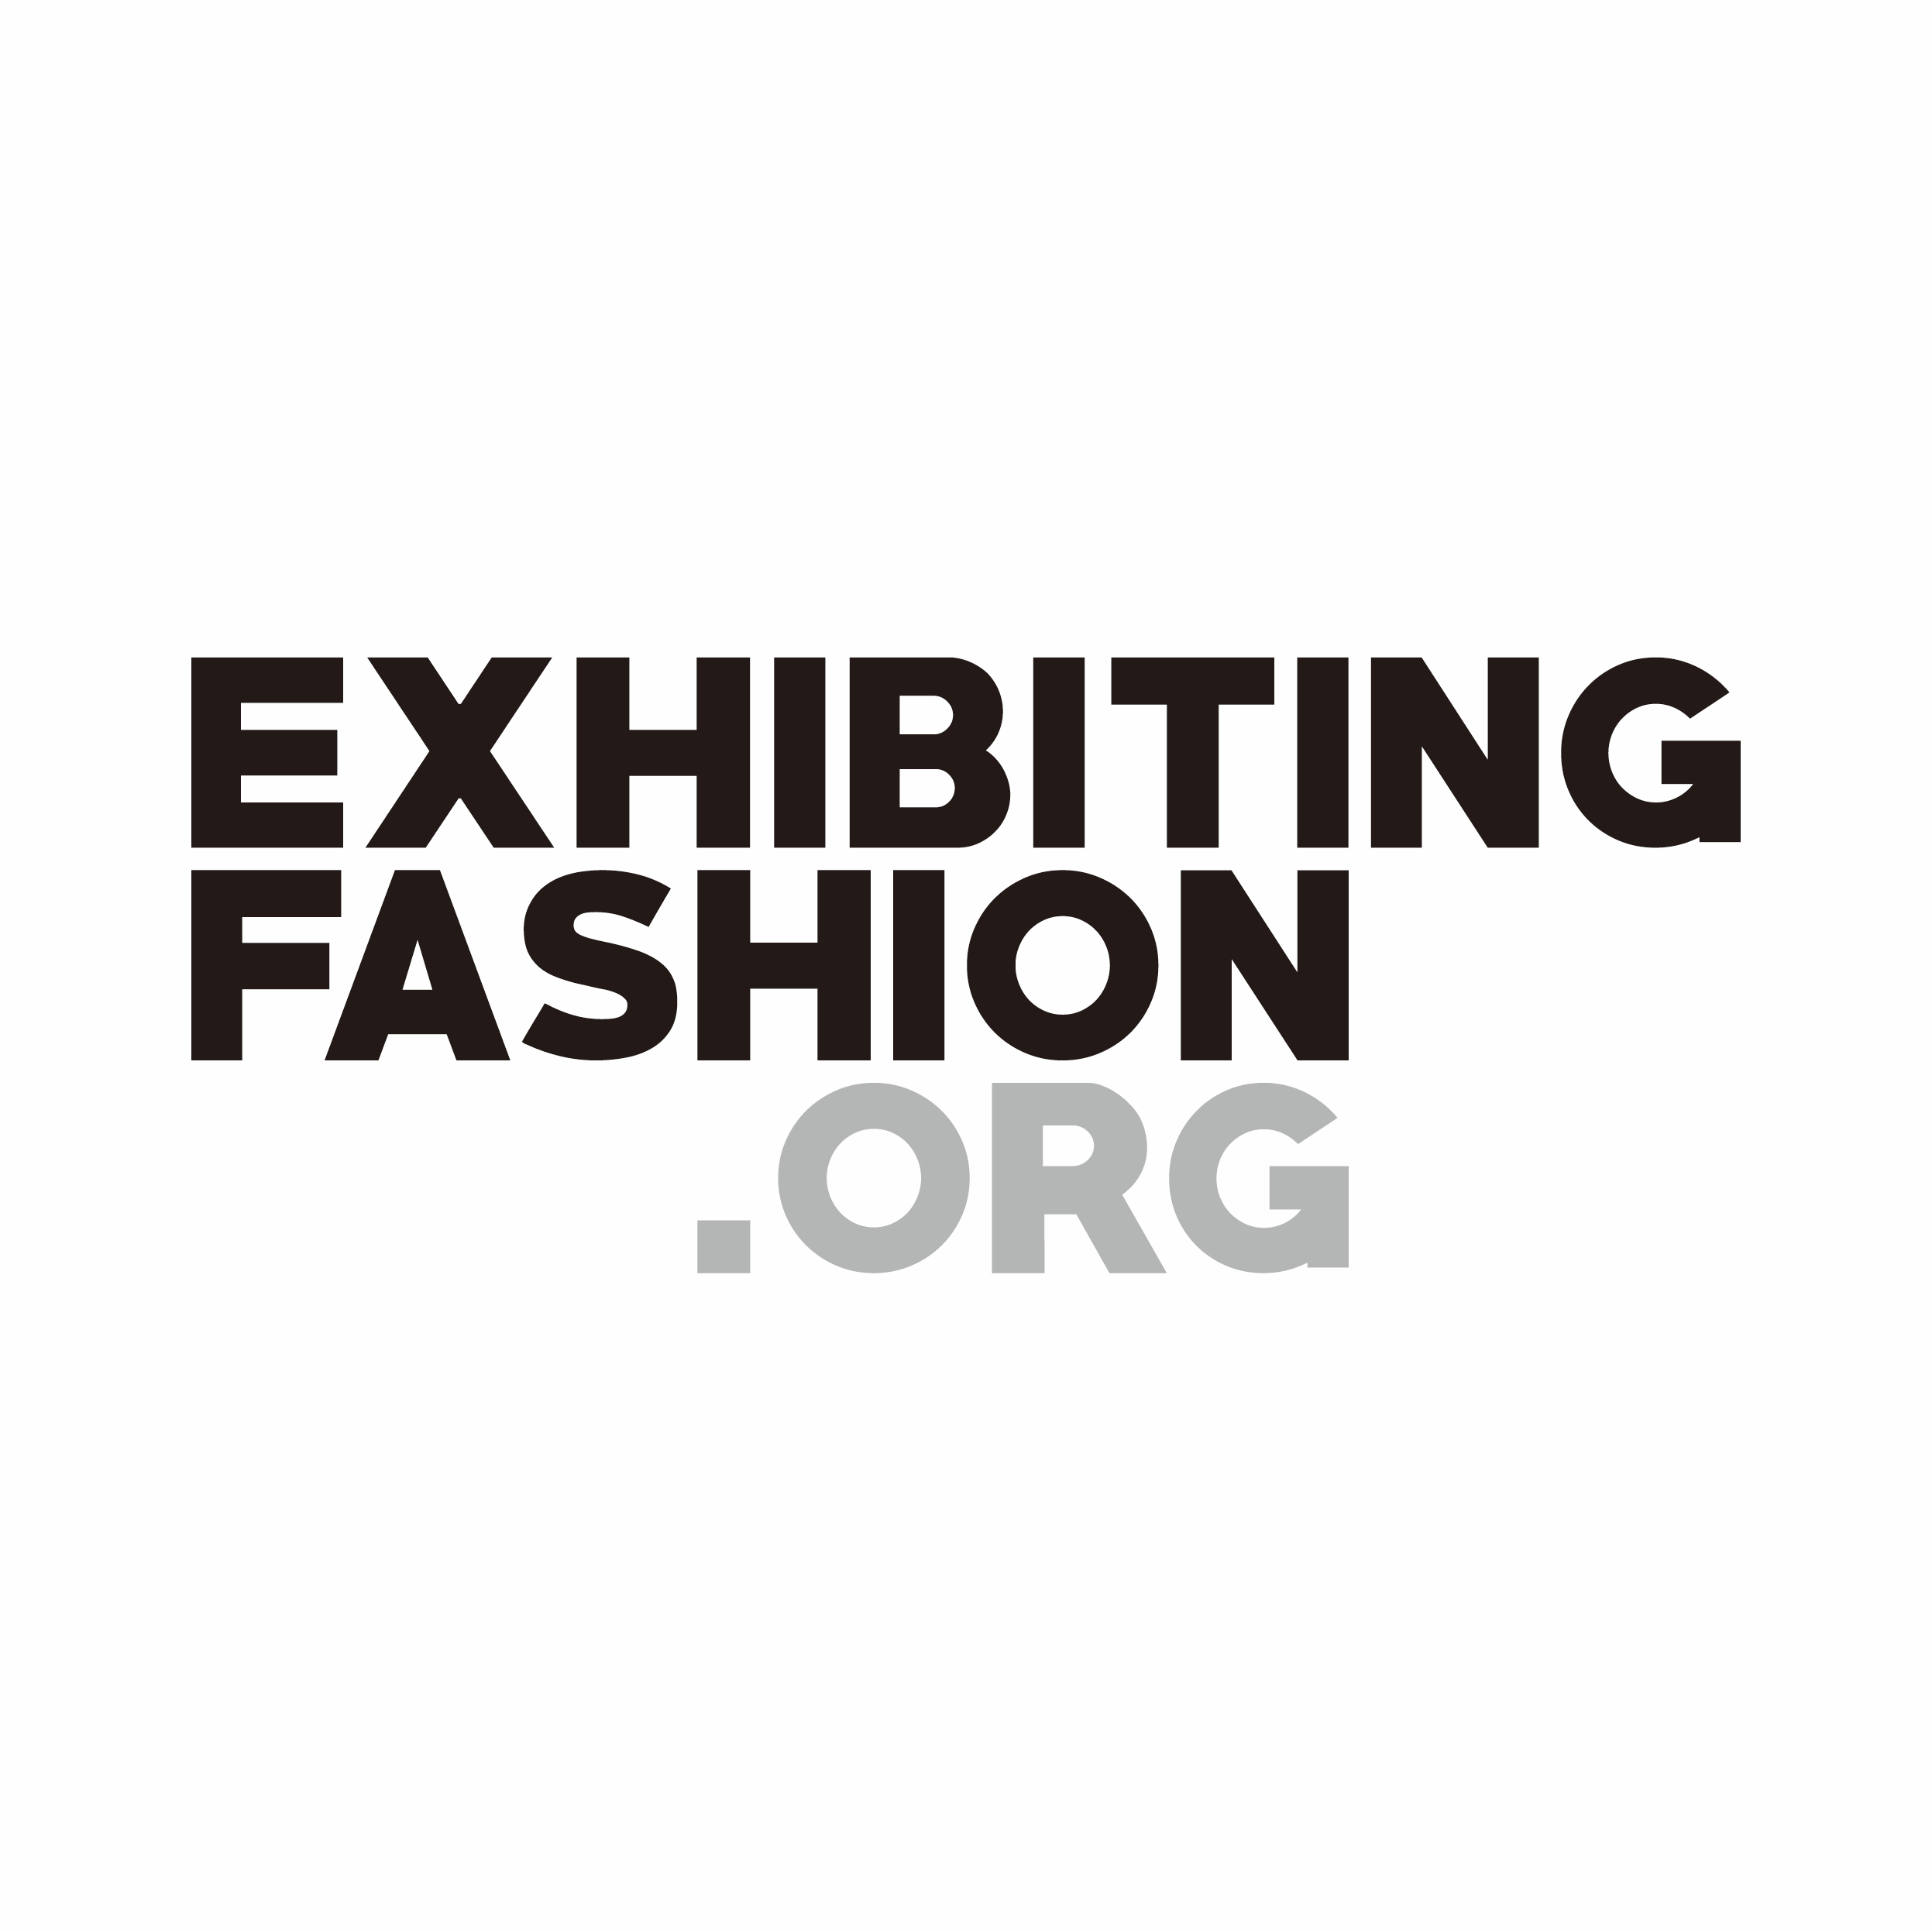 ExhibitingFashion